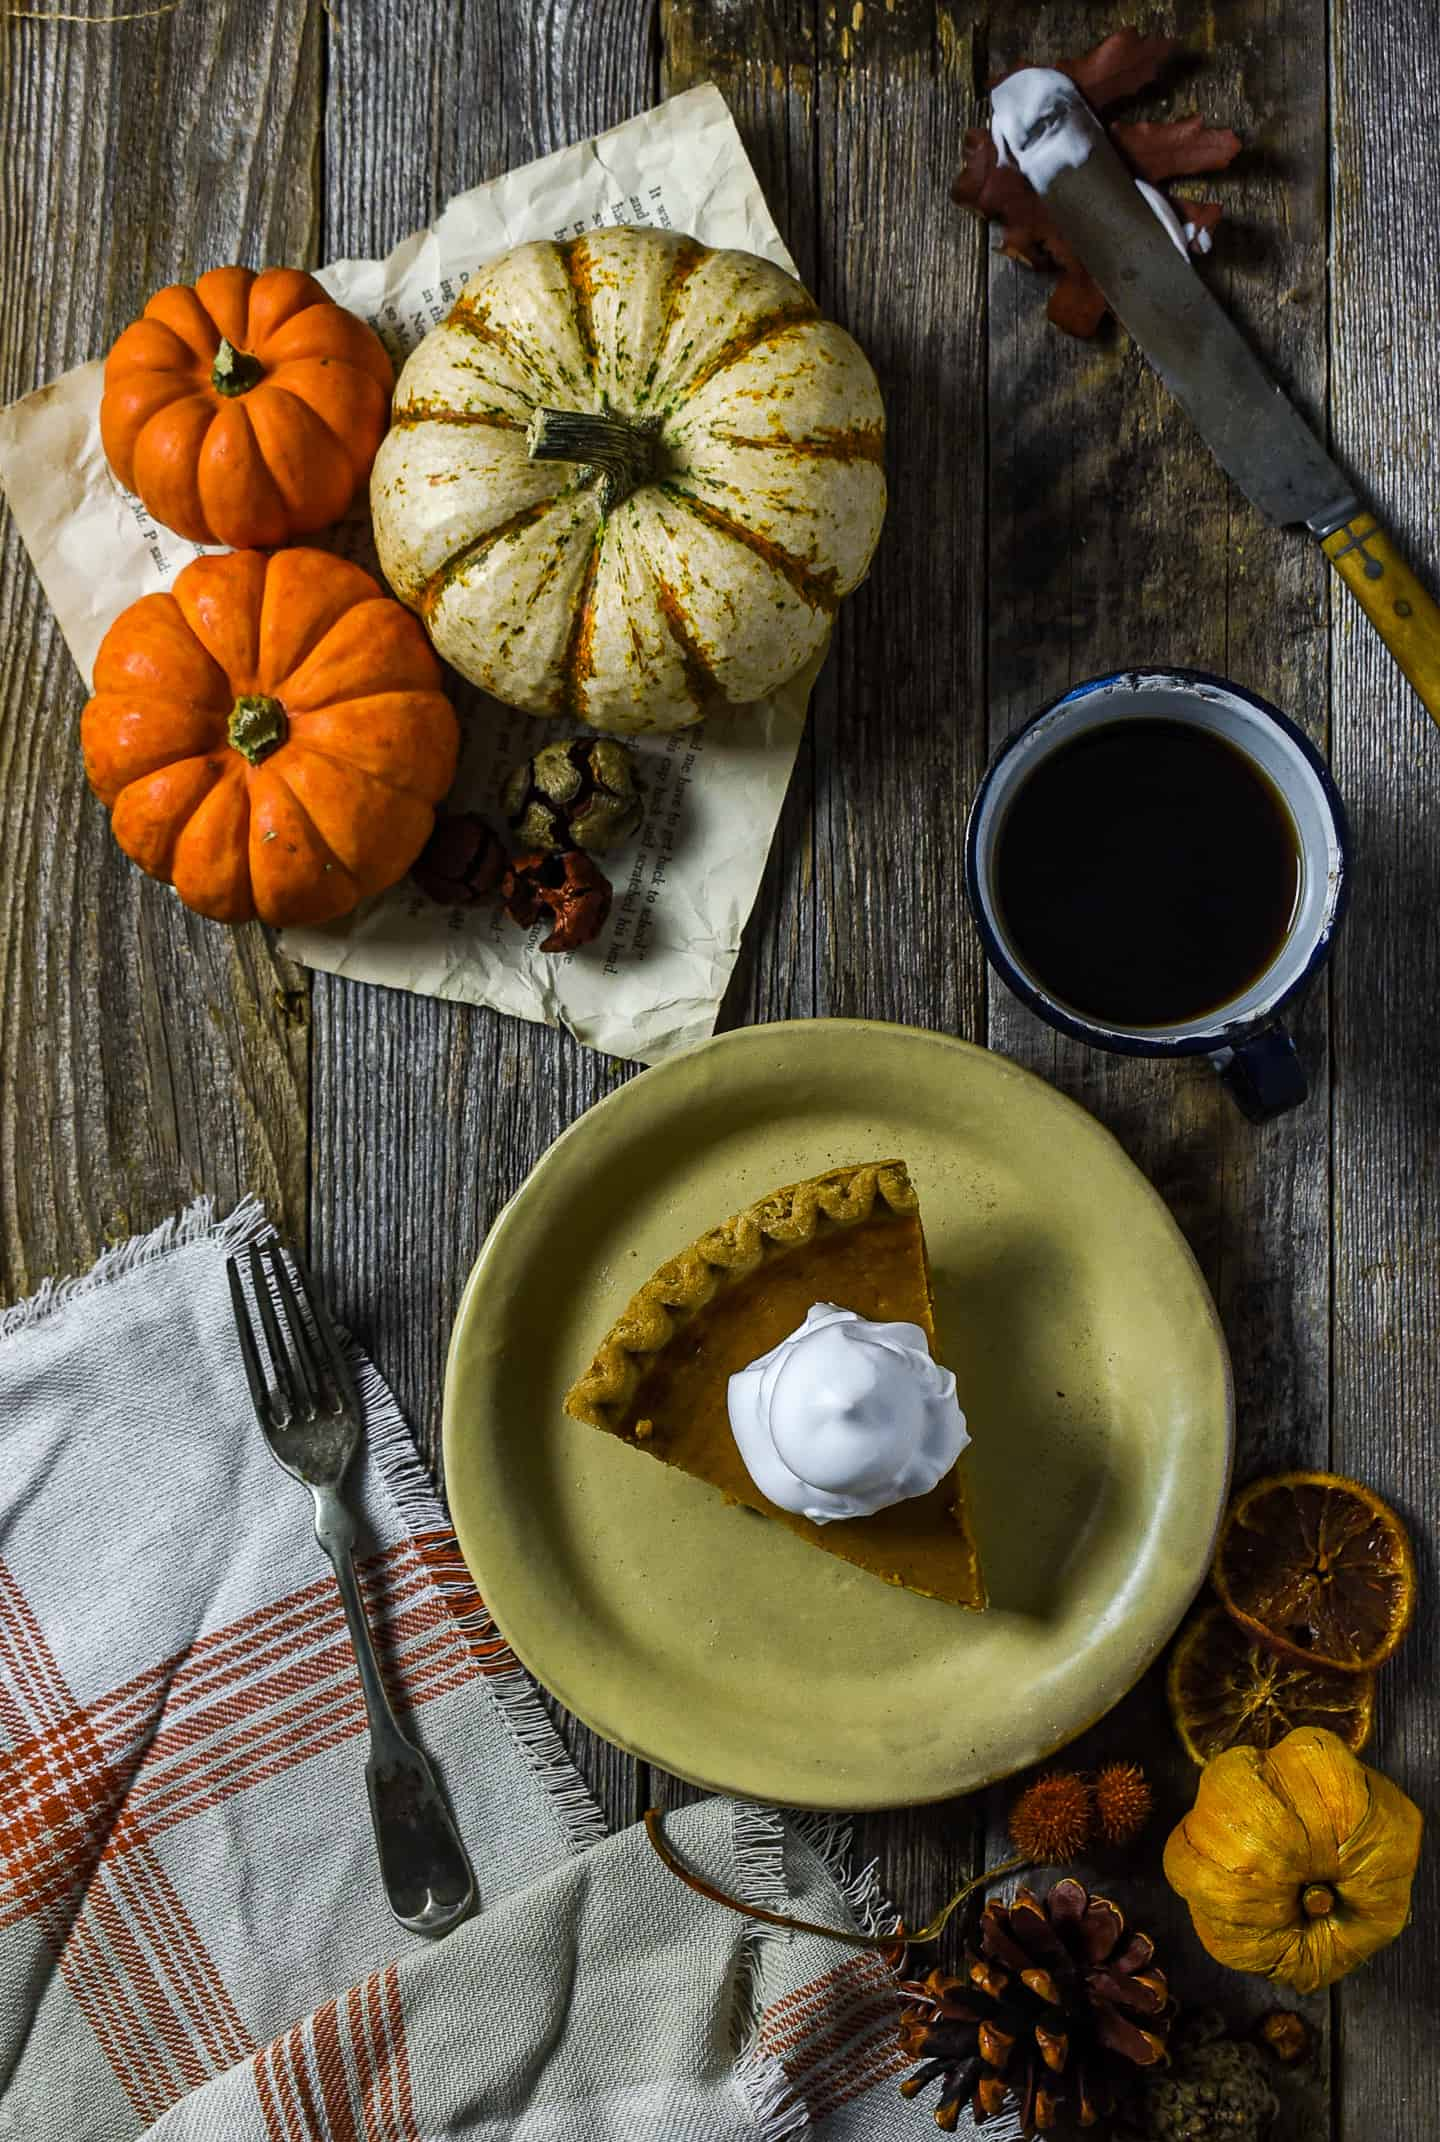 Pumpkin pie on plate with whipped cream on top.